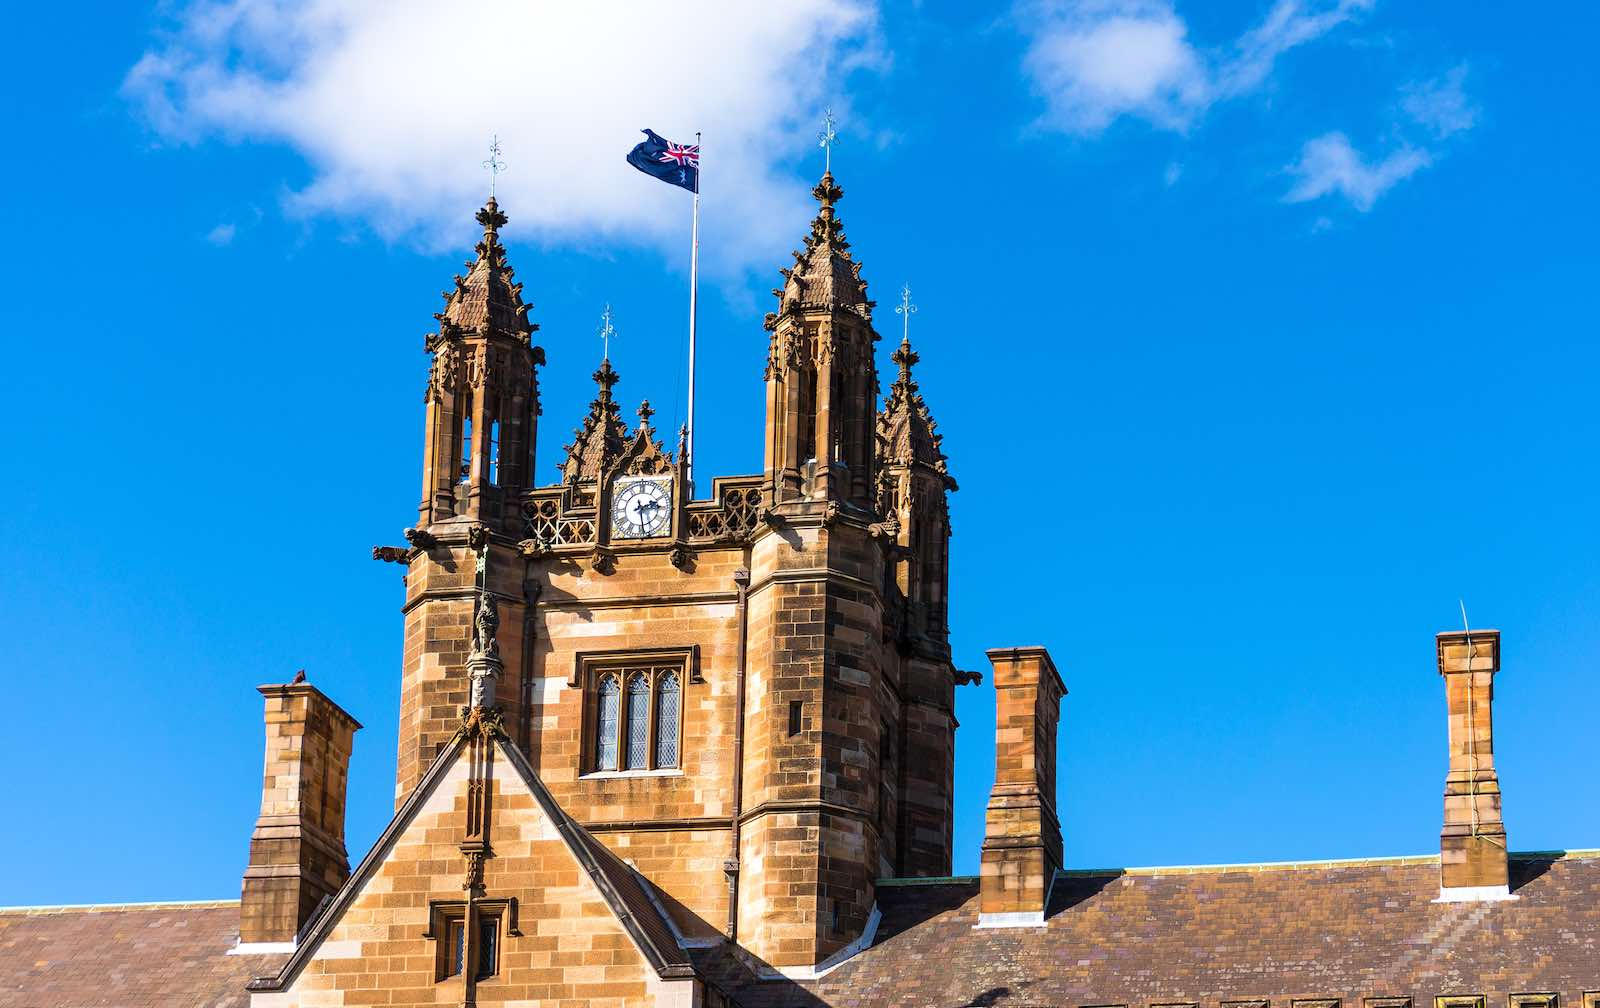 The flag flies over Sydney Uni (Photo: Katharina13/Getty Images)